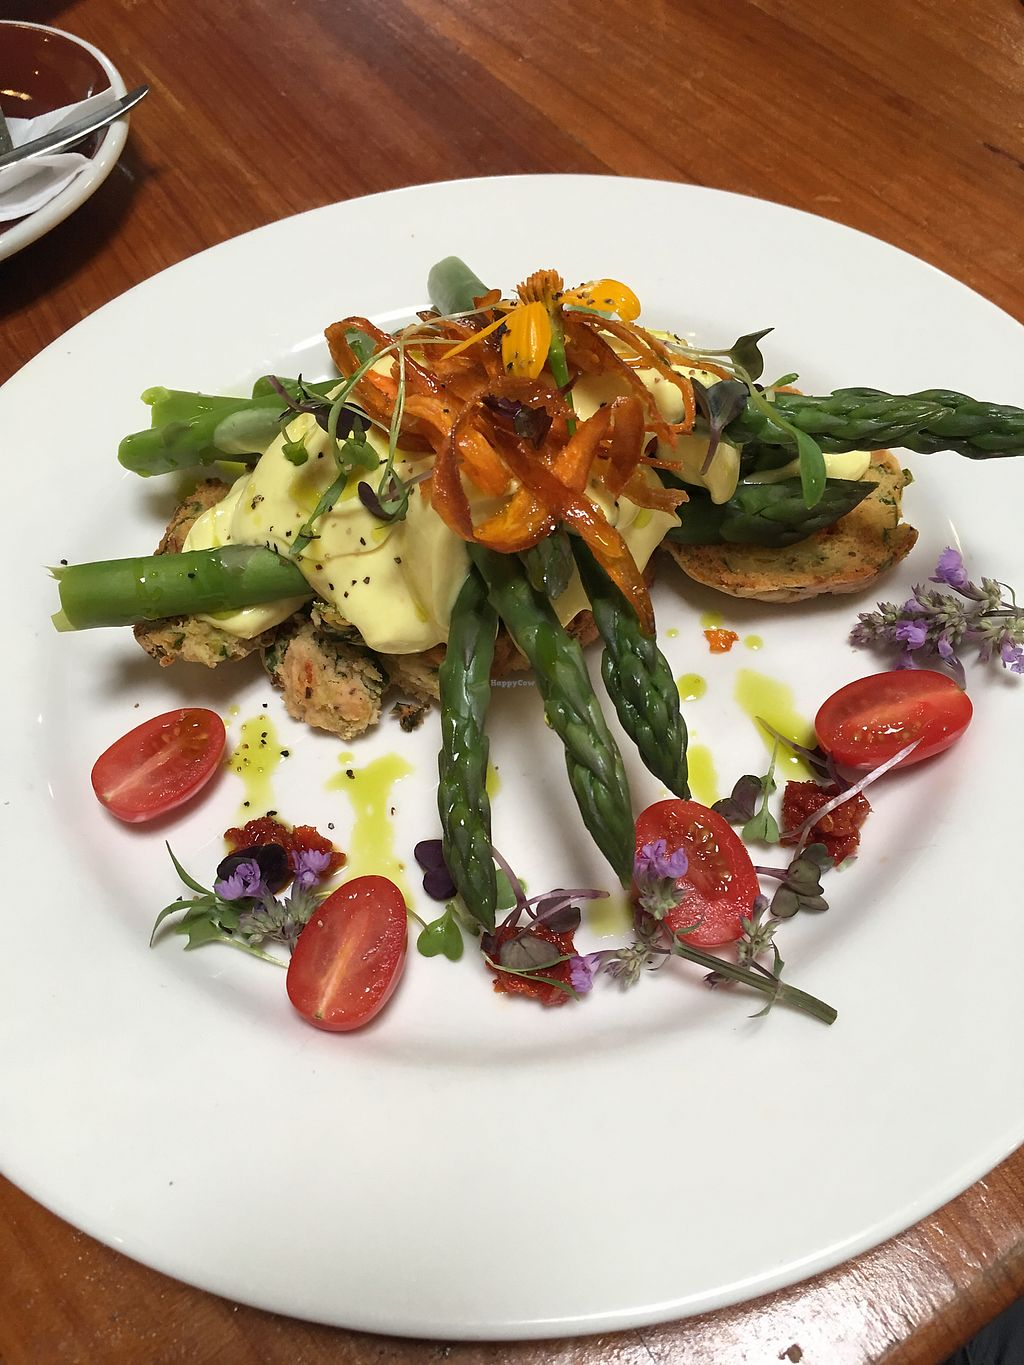 """Photo of Whispers Cafe  by <a href=""""/members/profile/perkonius"""">perkonius</a> <br/>Vegan Benedict. Hollandaise was spectacular! <br/> November 26, 2017  - <a href='/contact/abuse/image/74234/329216'>Report</a>"""